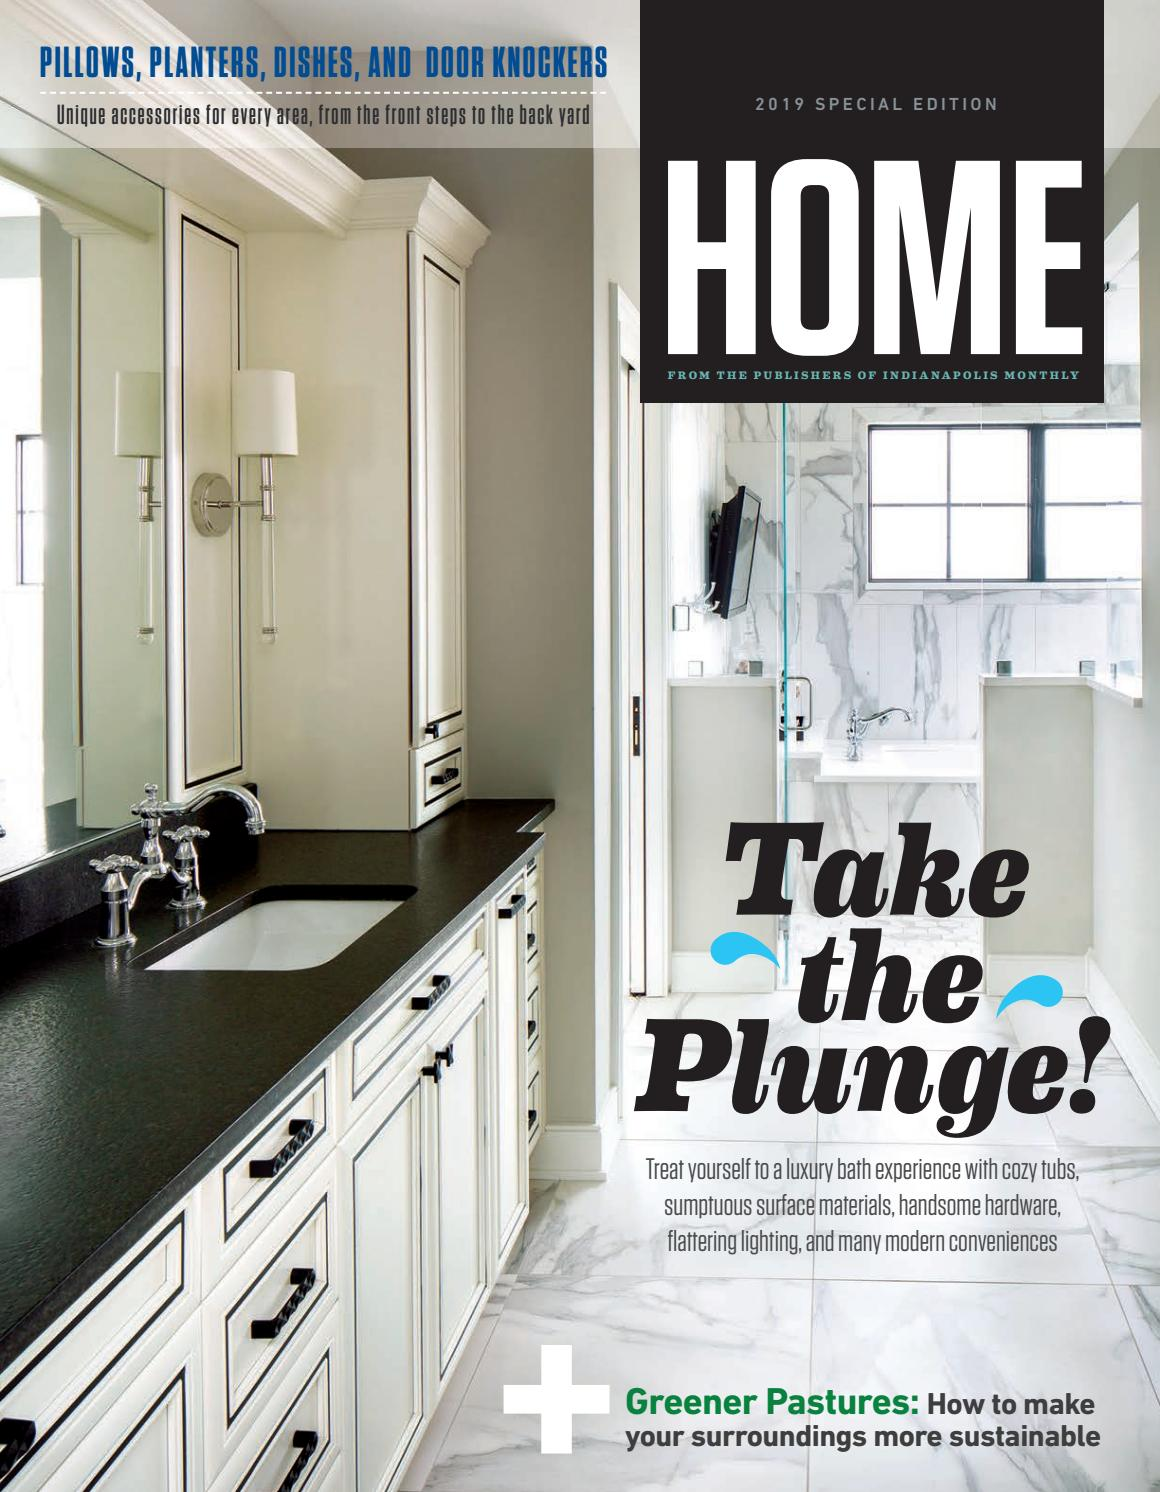 Indianapolis Monthly Home magazine 2019 by Indianapolis Monthly - issuu